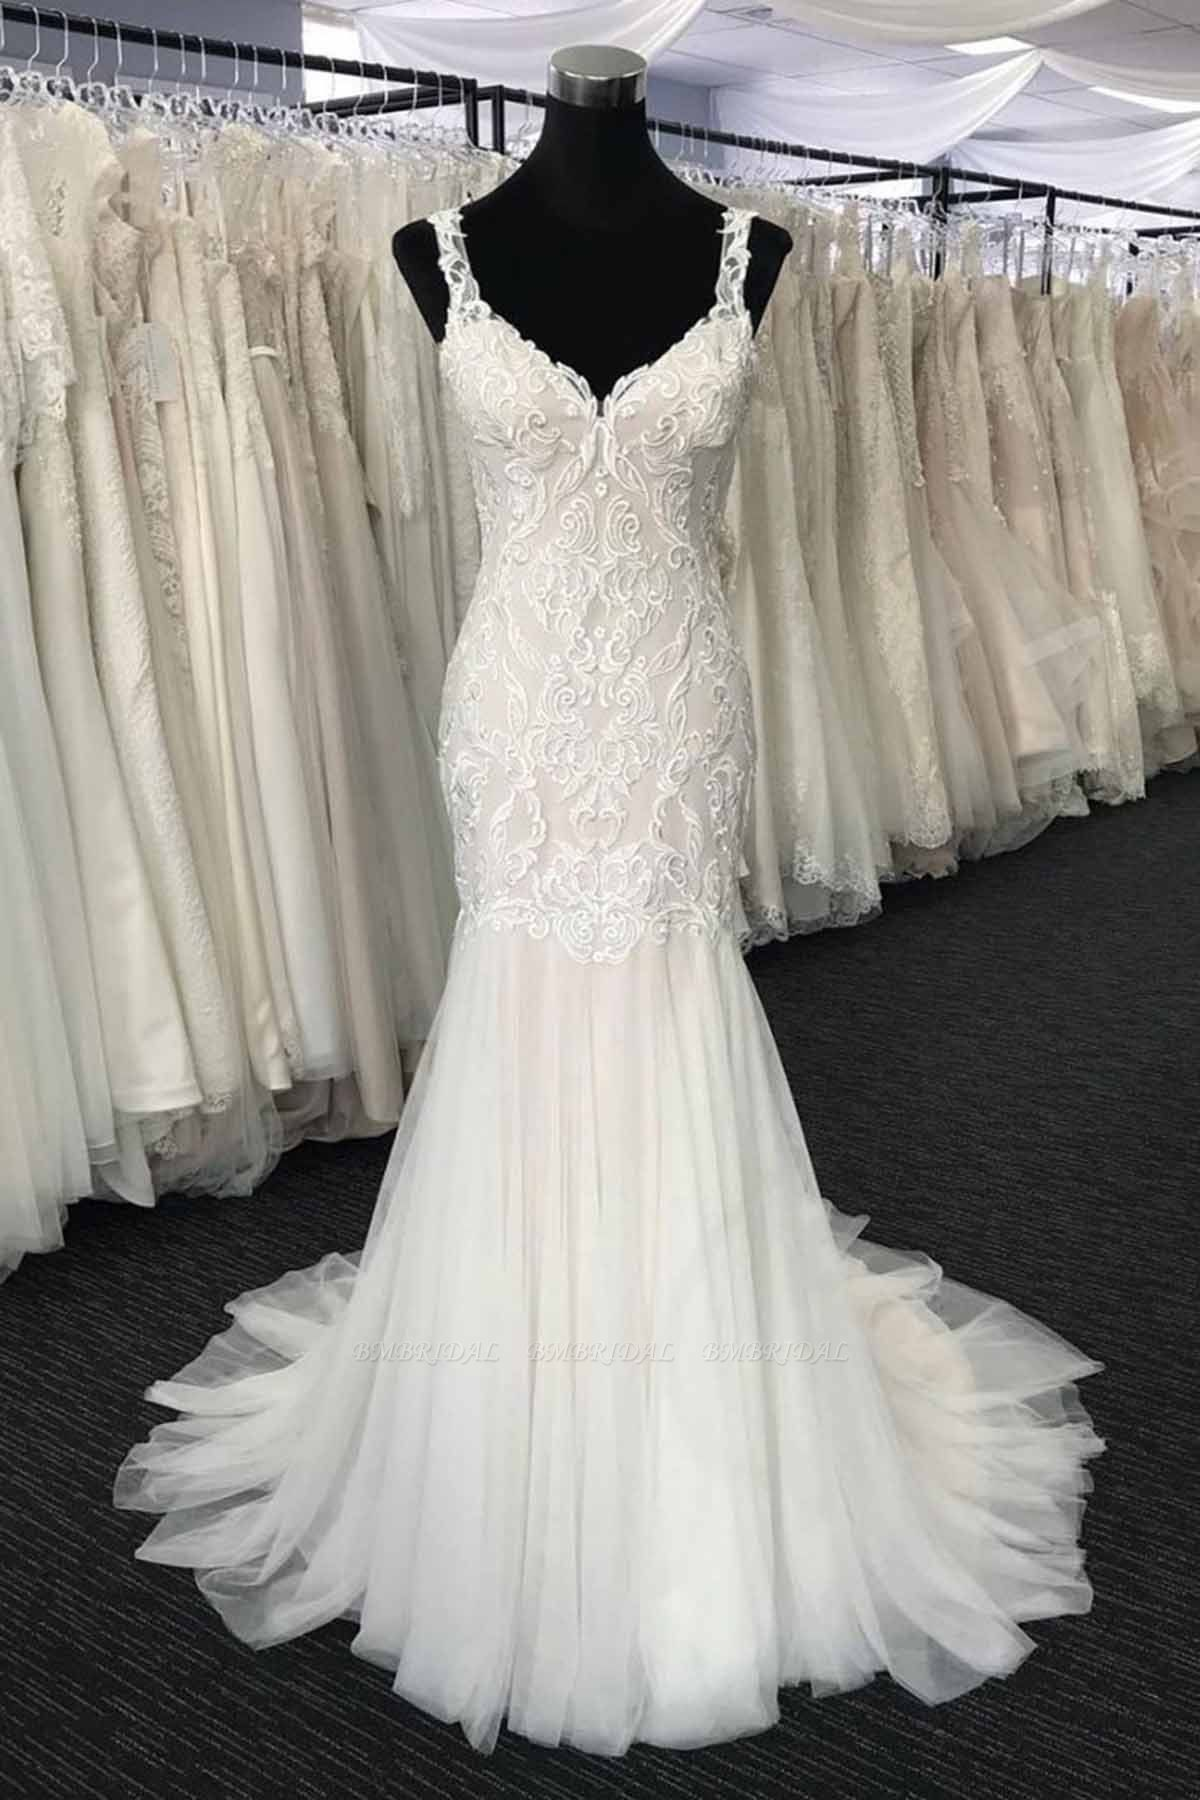 Glamorous White Tulle V-Neck Long Appliques Wedding Dress Mermaid Lace Bridal Gowns On Sale